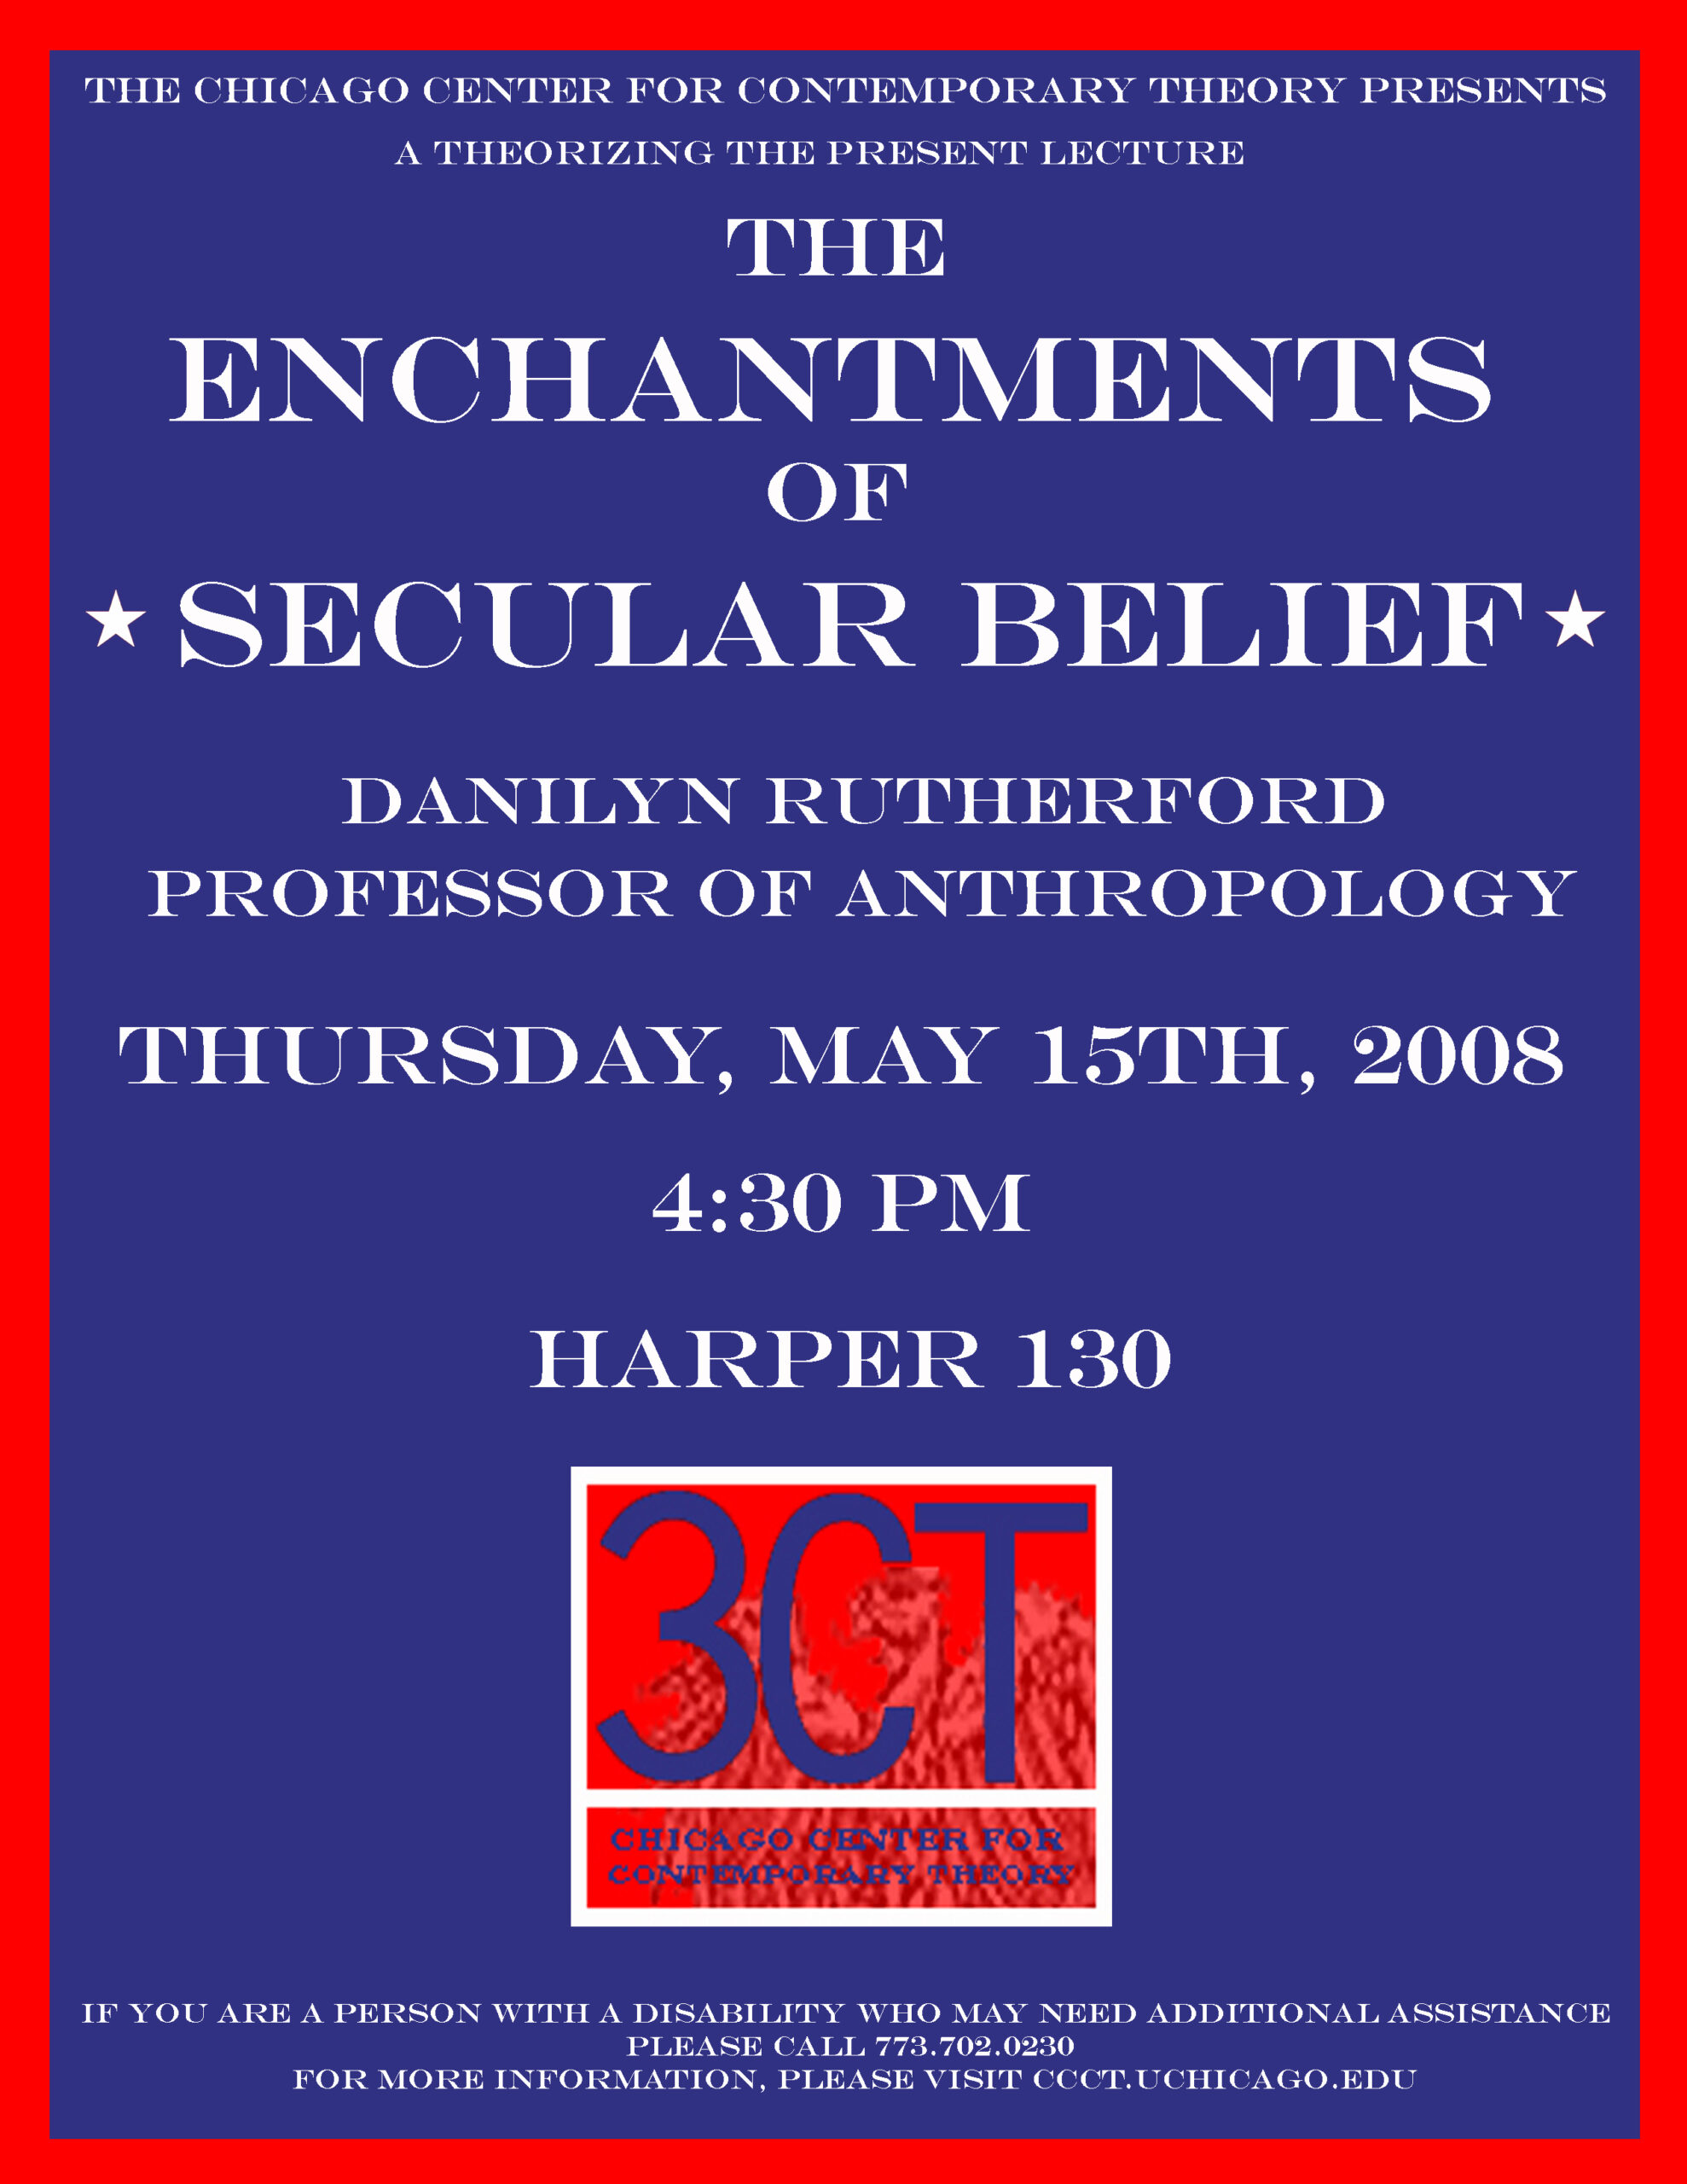 Poster for Danilyn Rutherford's Theorizing the Present lecture,